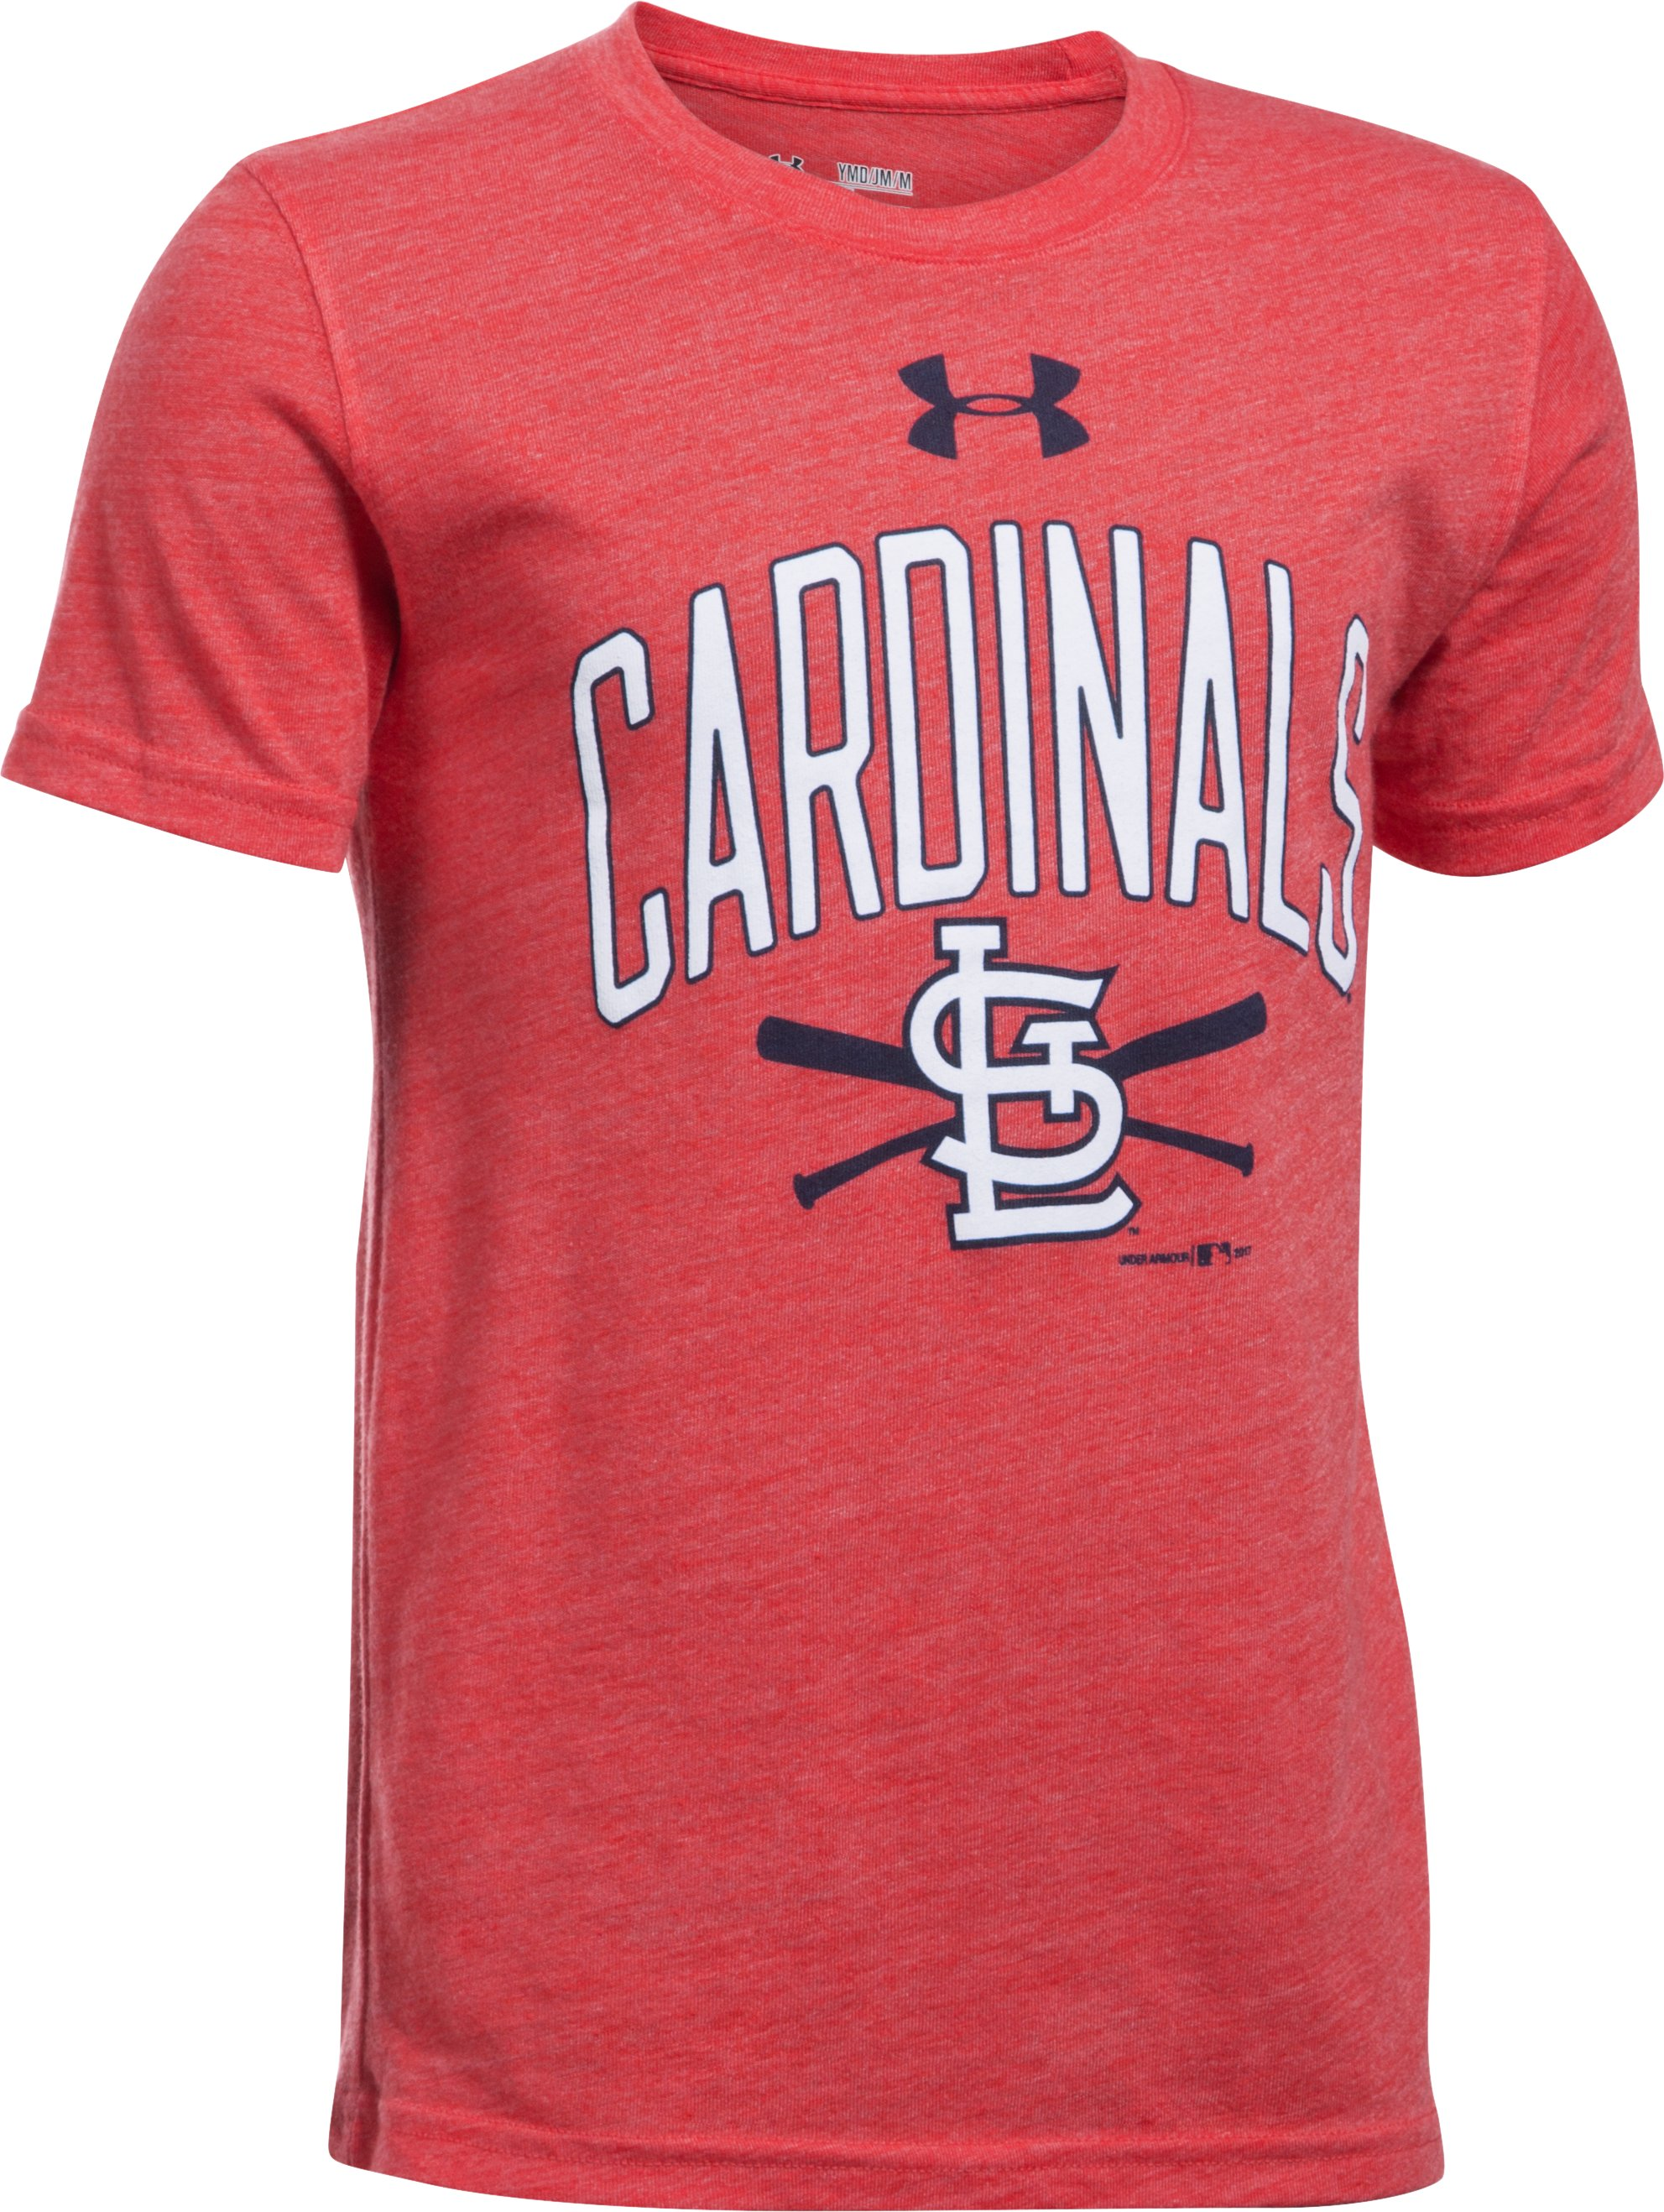 Boys' St. Louis Cardinals Tri-Blend T-Shirt, Red,